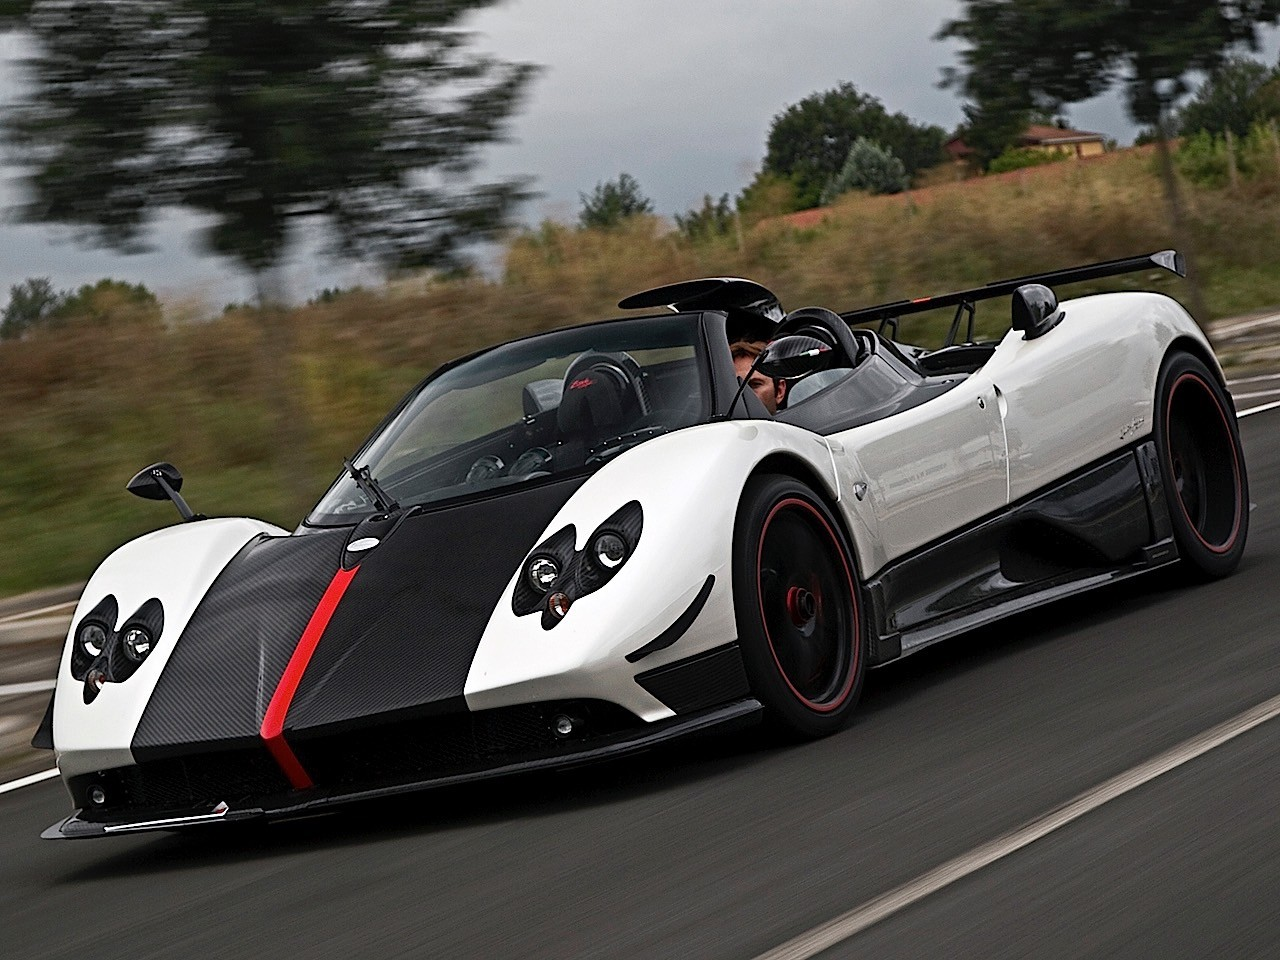 pagani zonda cinque specs auto review price release date and rumors. Black Bedroom Furniture Sets. Home Design Ideas